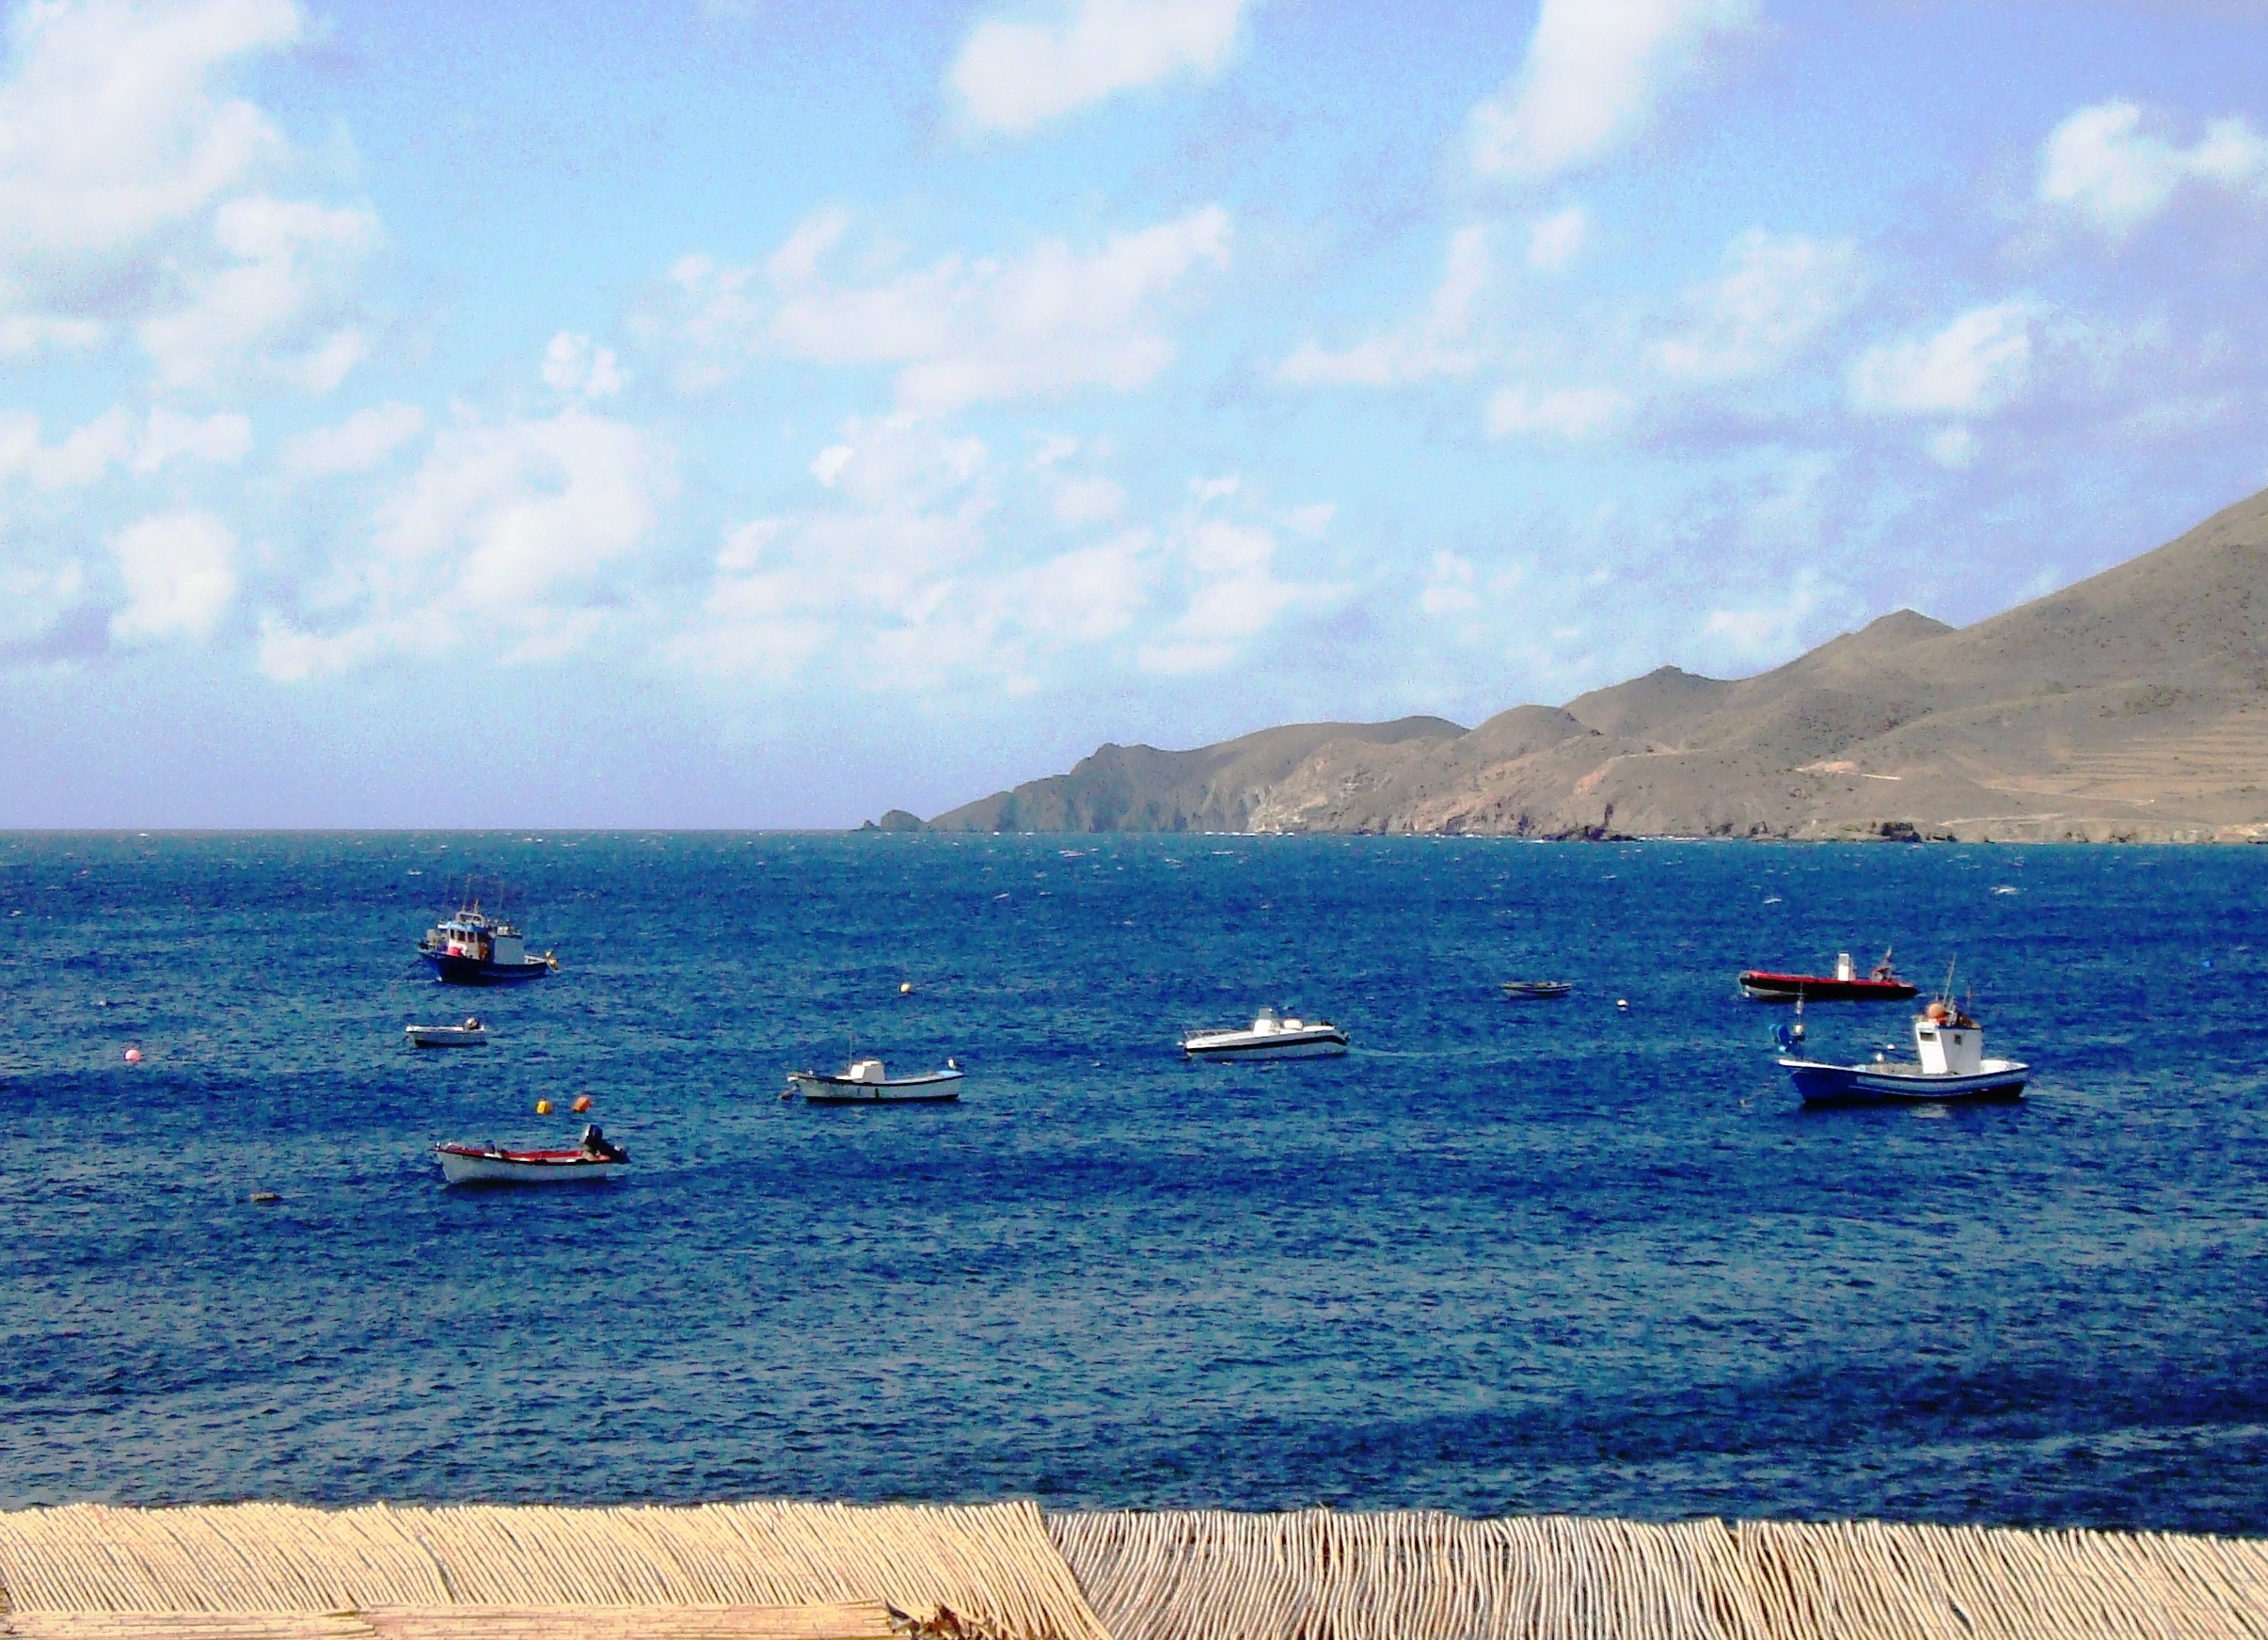 """New year's Day at our """"secret s[ain"""" location in cabo de gata - view from our window on january 1st 2018 - apologies that I cannot guarantee the weather for 2019!"""